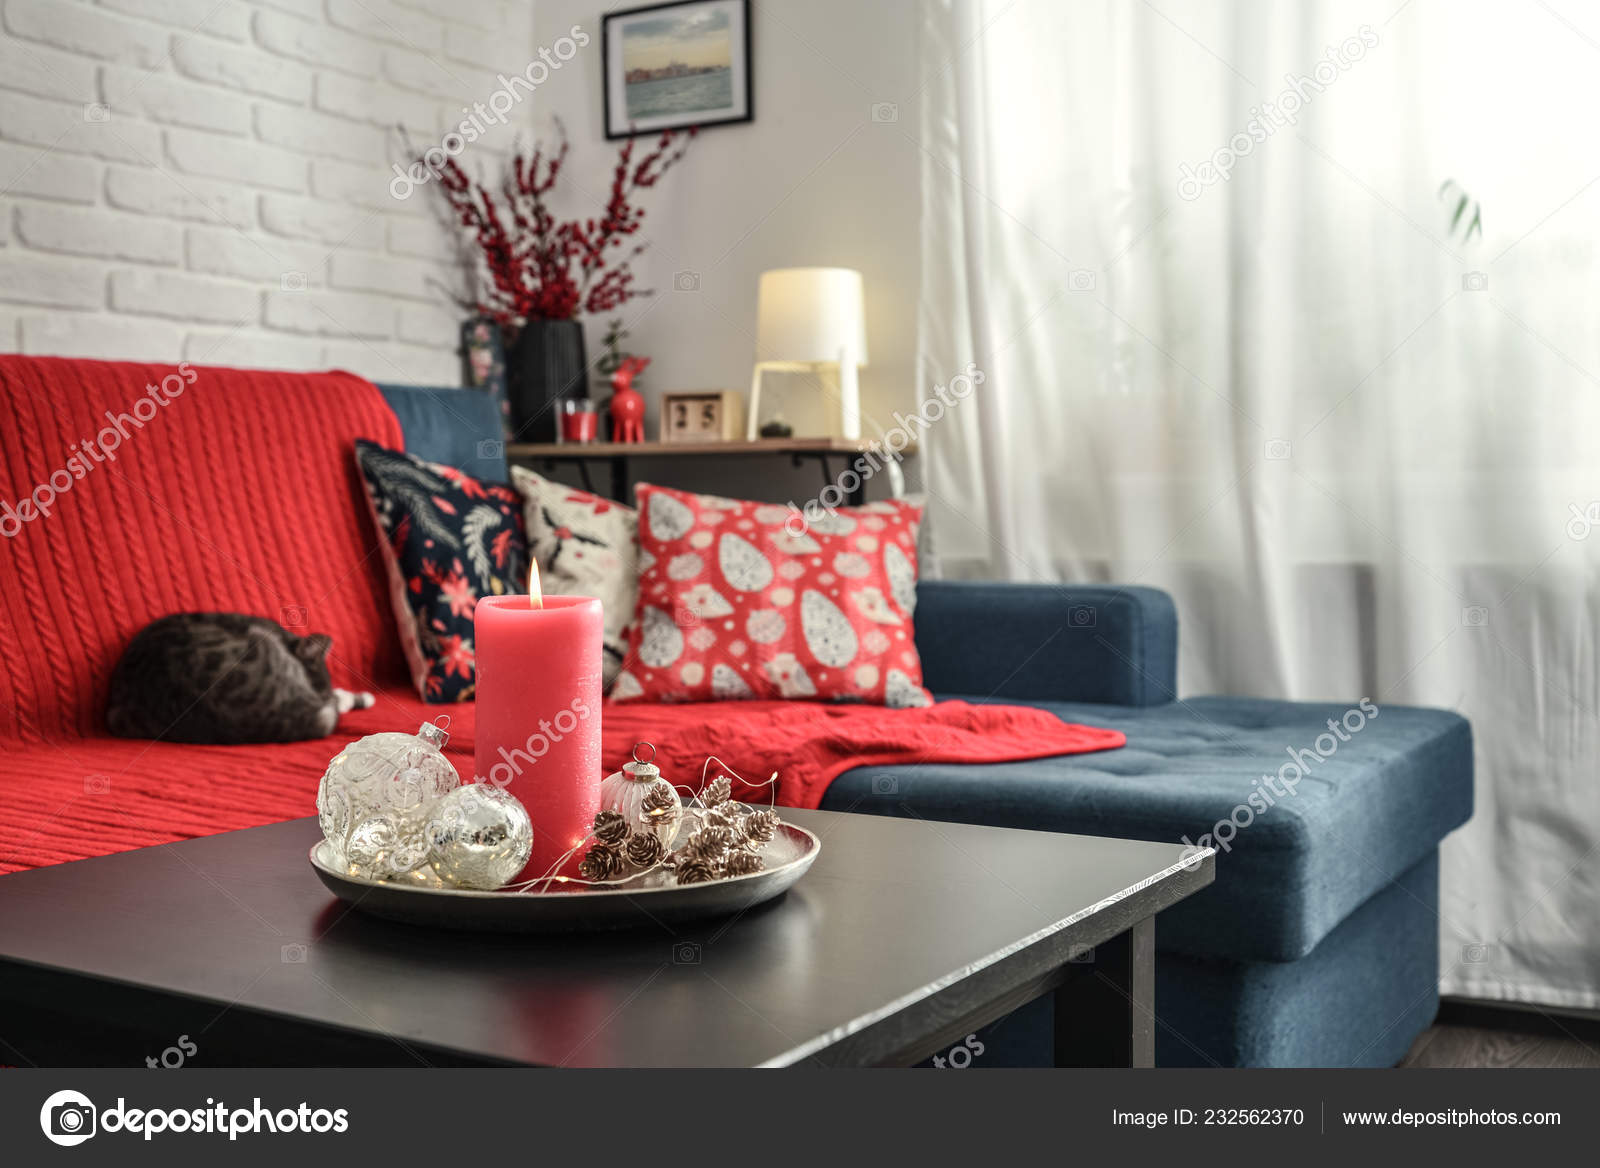 Christmas Decorations Candle Coffee Table Living Room Couch Closeup Stock Photo Image By C Tashka2000 232562370